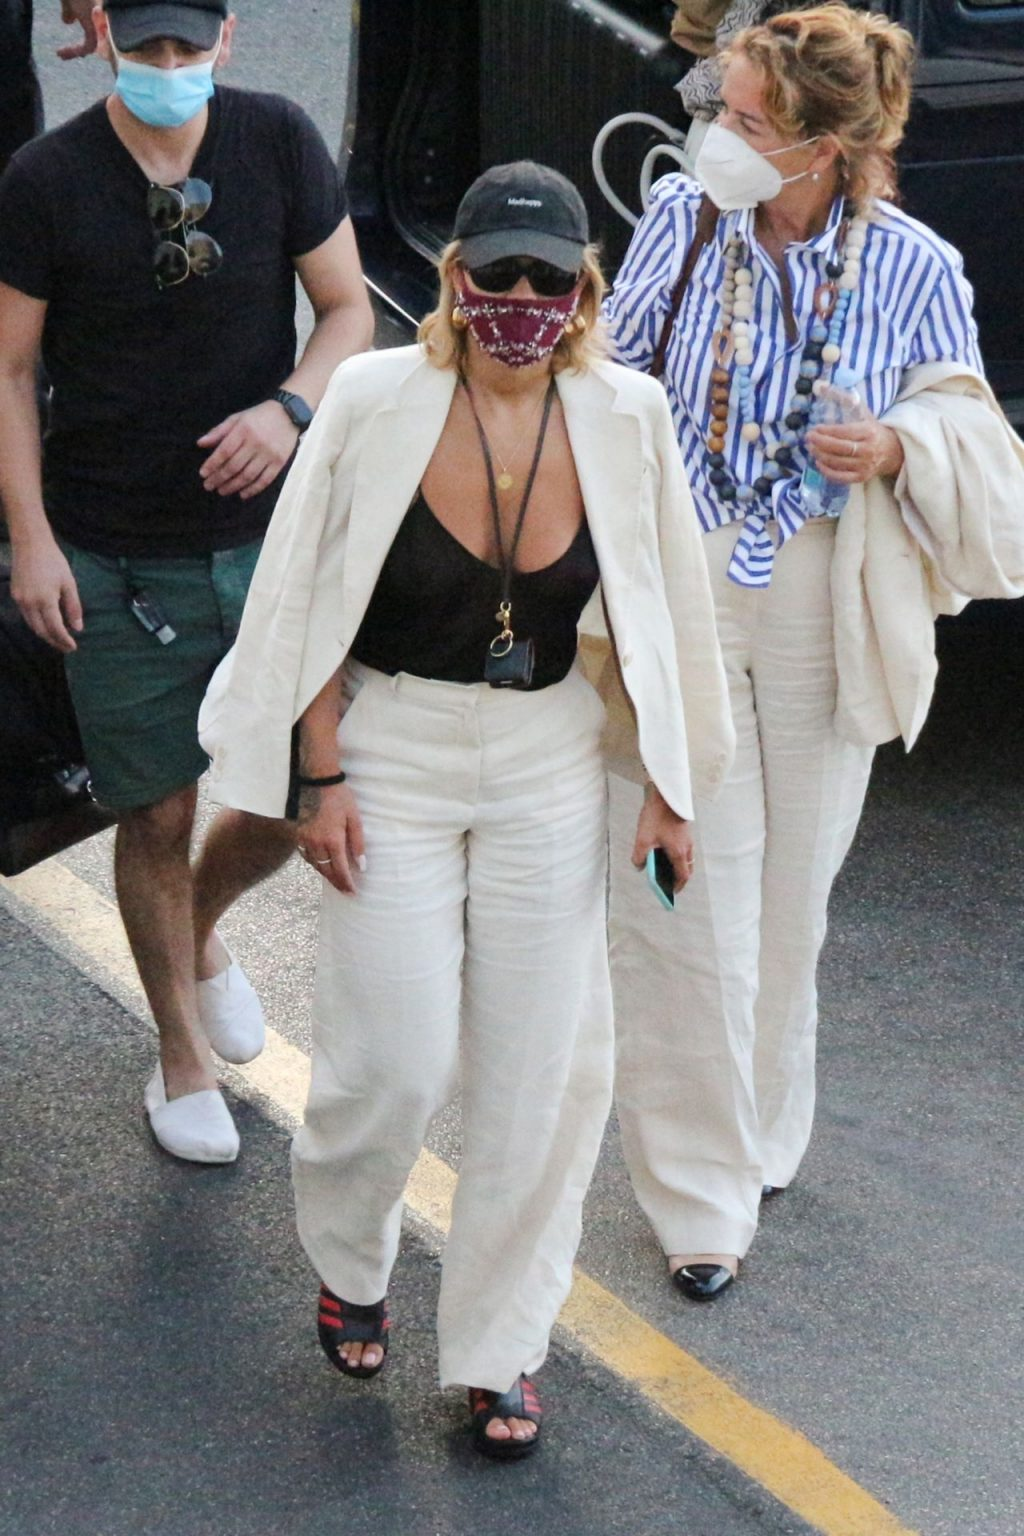 Rita Ora is Pictured Braless in Capri (26 Slightly Nude Photos)